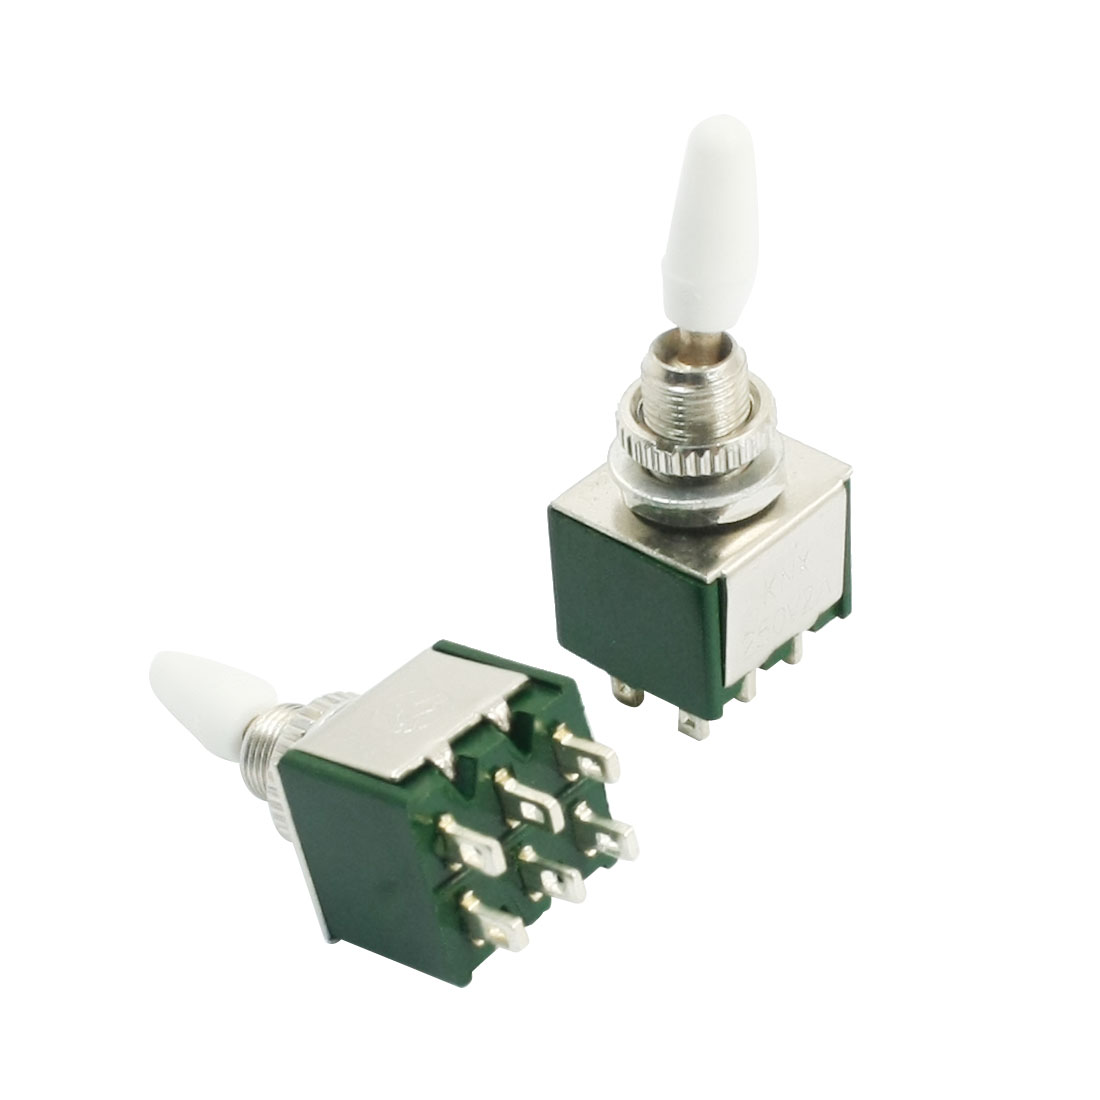 Panel Mount 2 Positions 6 Pin DPDT Toggle Switch AC 250V 2A Green 2pcs